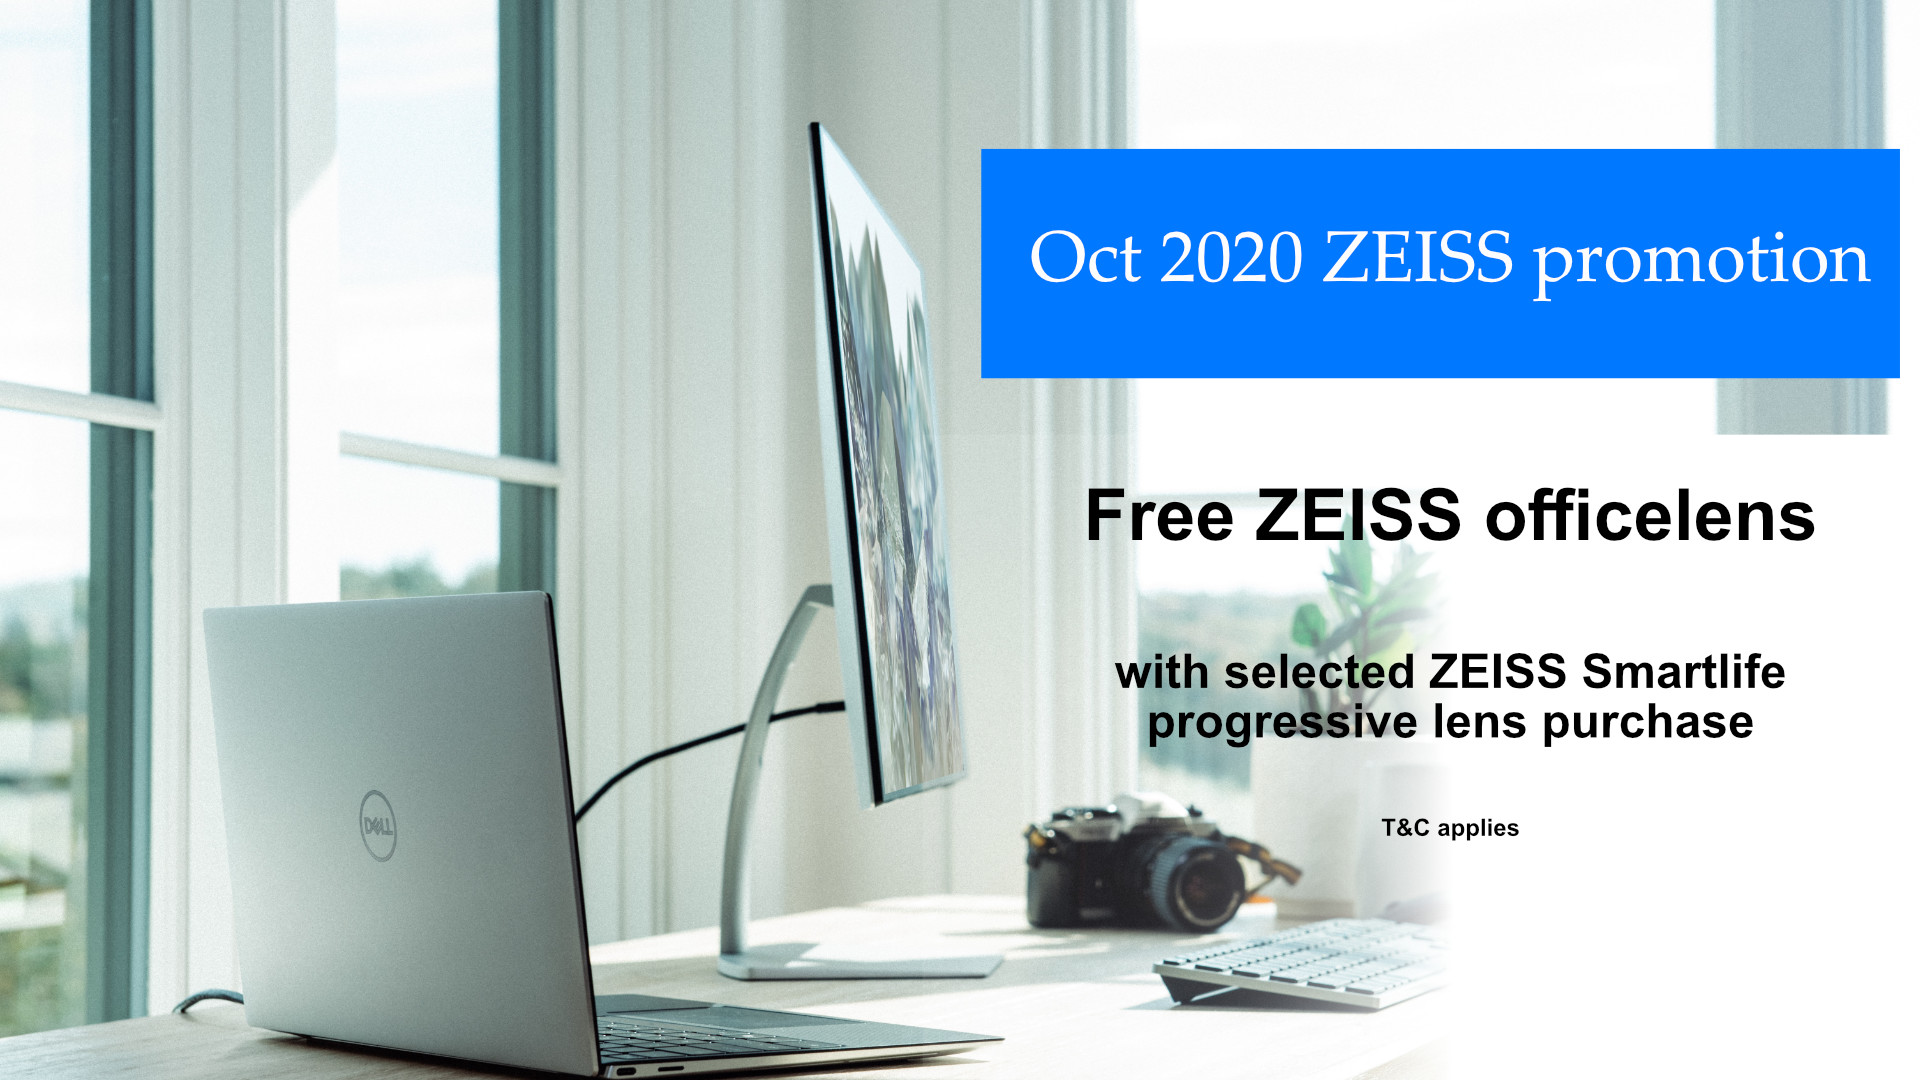 zeiss promotion oct 2020